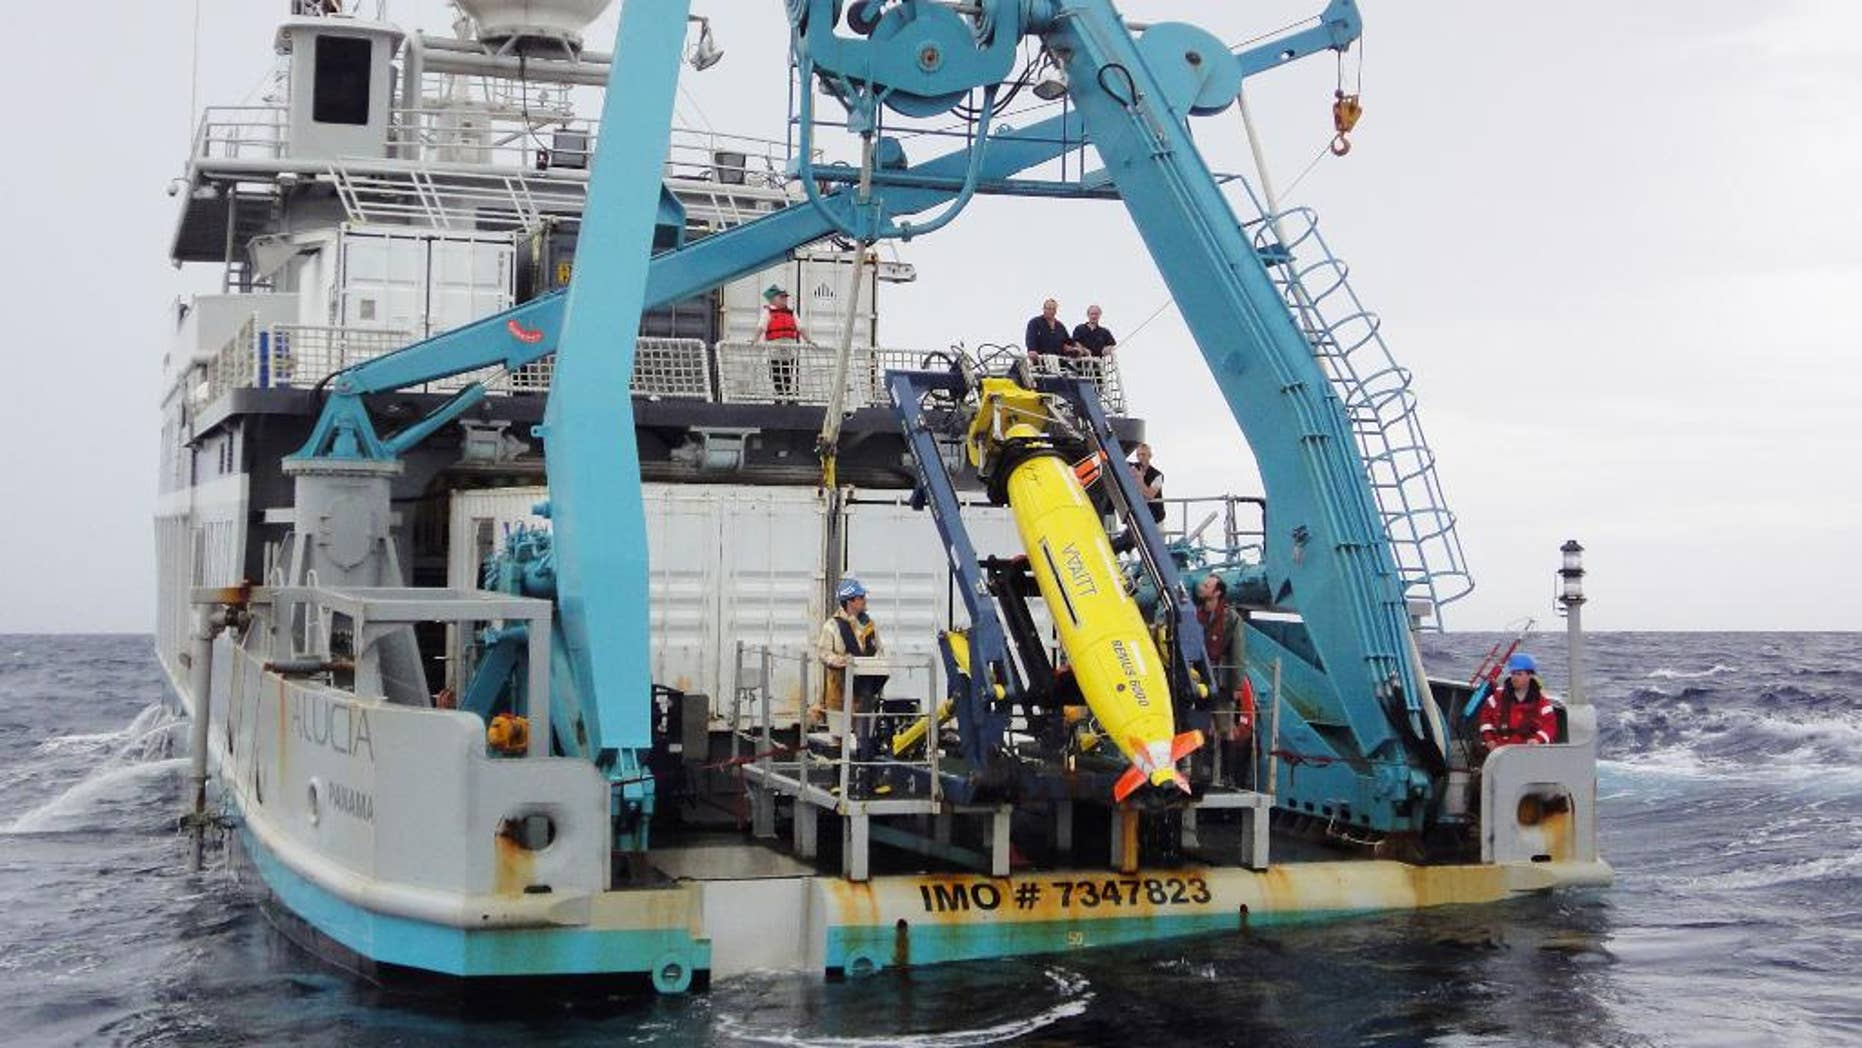 This 2011 photo provided by Sylvain Pascaud shows the ship Alucia and the REMUS 6000 robot sub during the search for Air France Flight 447. Unmanned subs, also called autonomous underwater vehicles or AUVs, played a critical role in locating the wreckage of the lost Air France jet, two years after it crashed in the middle of the south Atlantic. The find allowed searchers to recover the black boxes that revealed the malfunctions behind the tragedy. (AP Photo/Sylvain Pascaud)